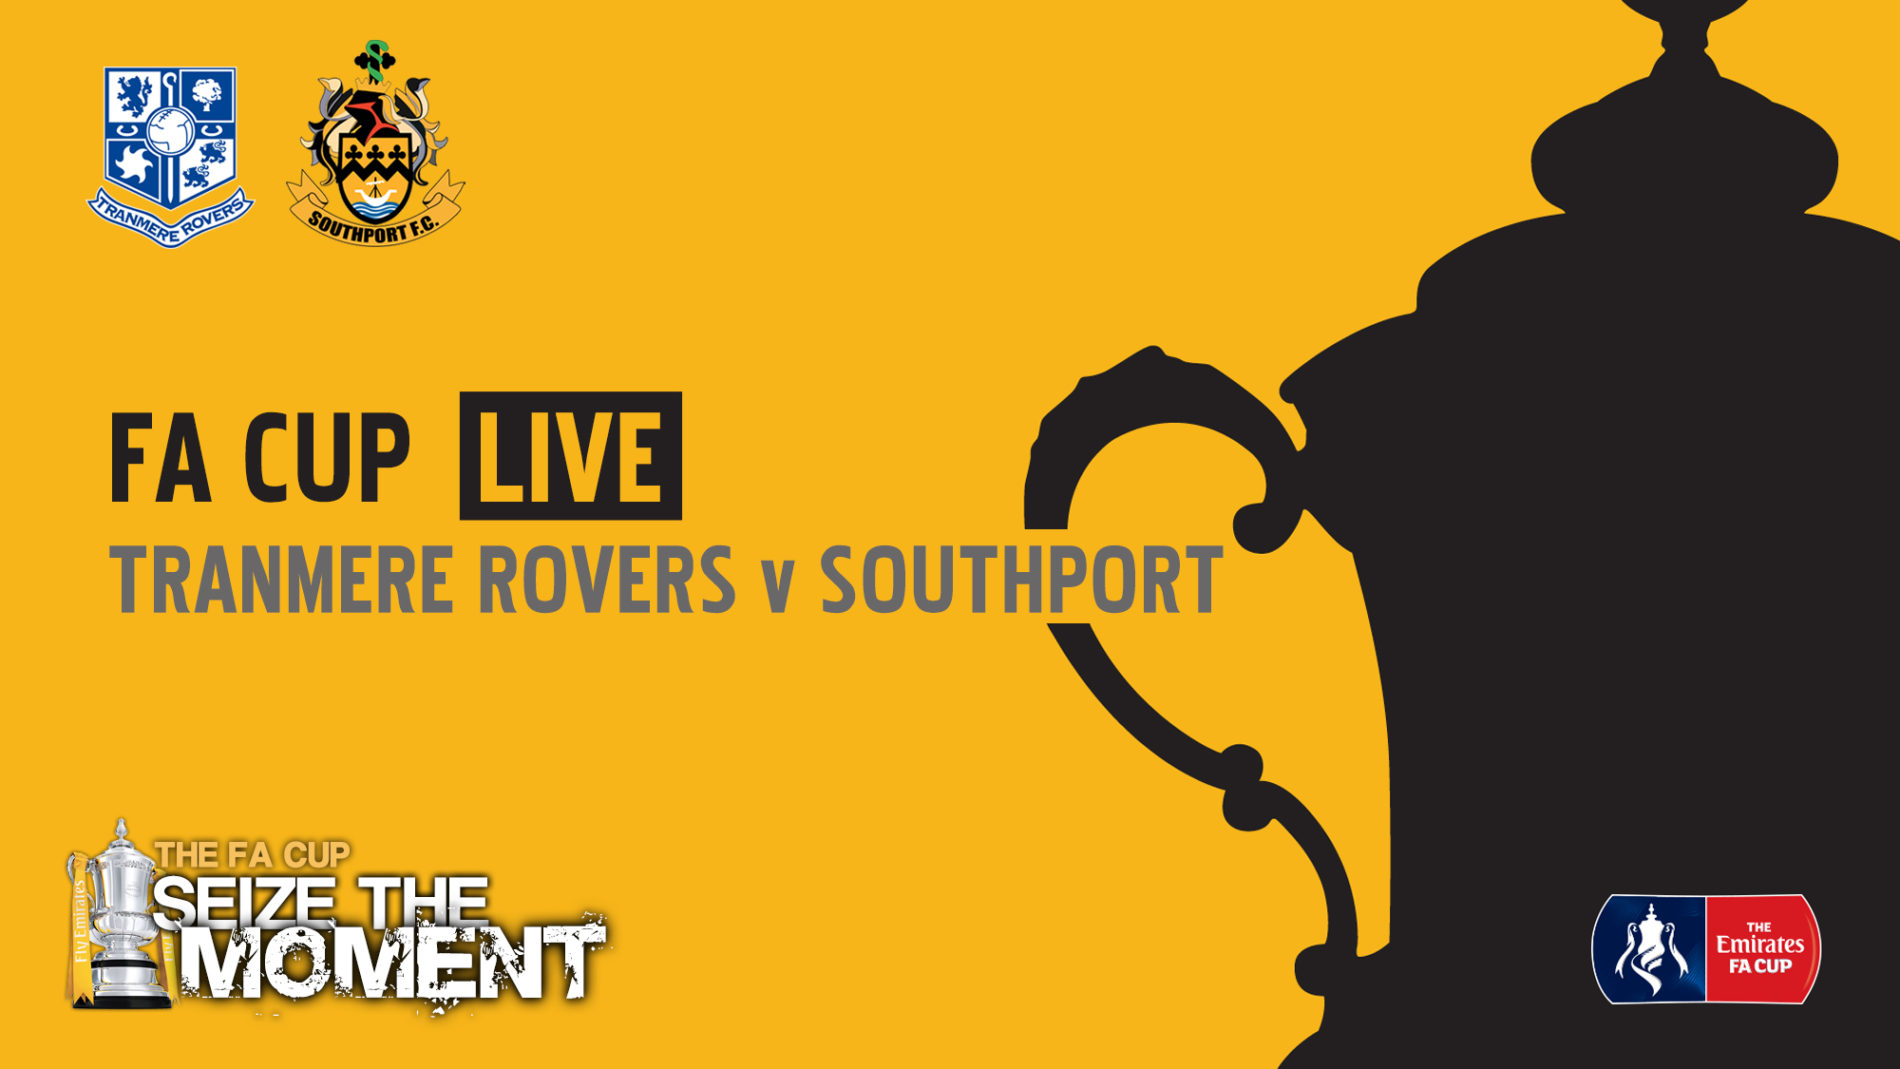 FA CUP LIVE | Tranmere Rovers v Southport